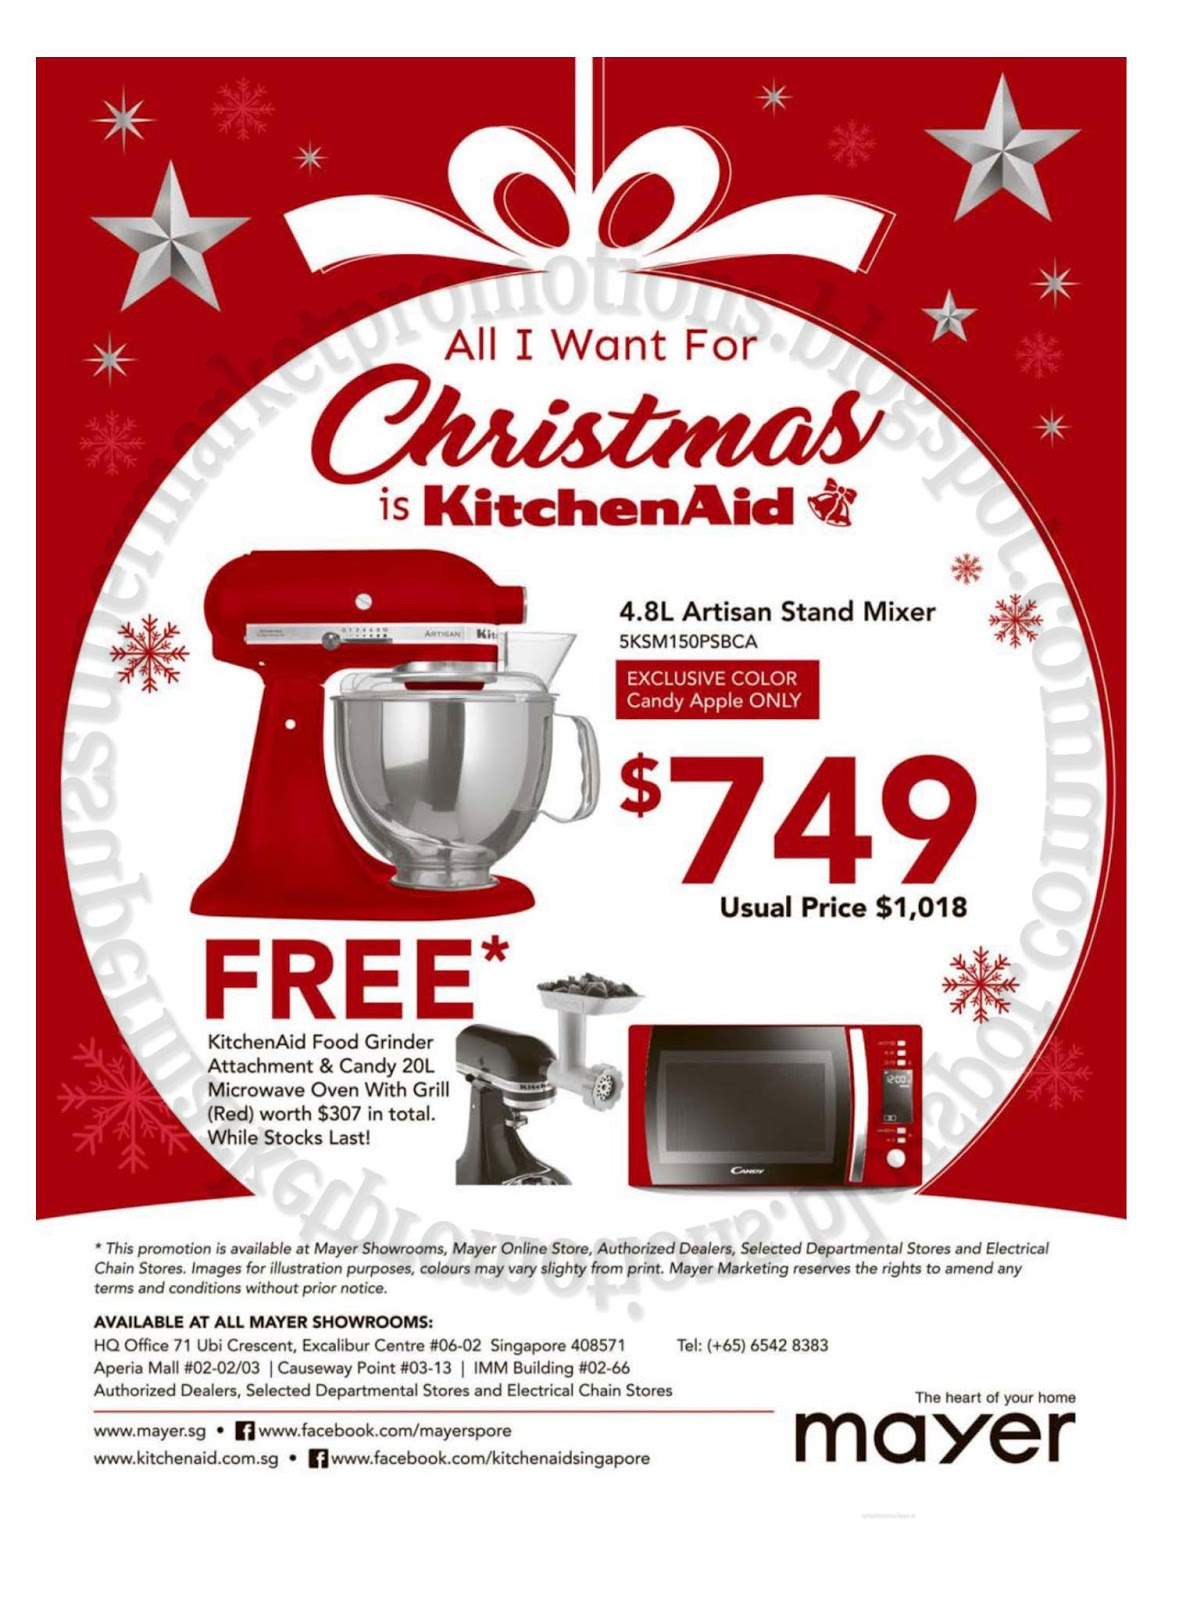 Mayer KitchenAid Christmas Promotion 10 November 2017 | Supermarket  Promotions